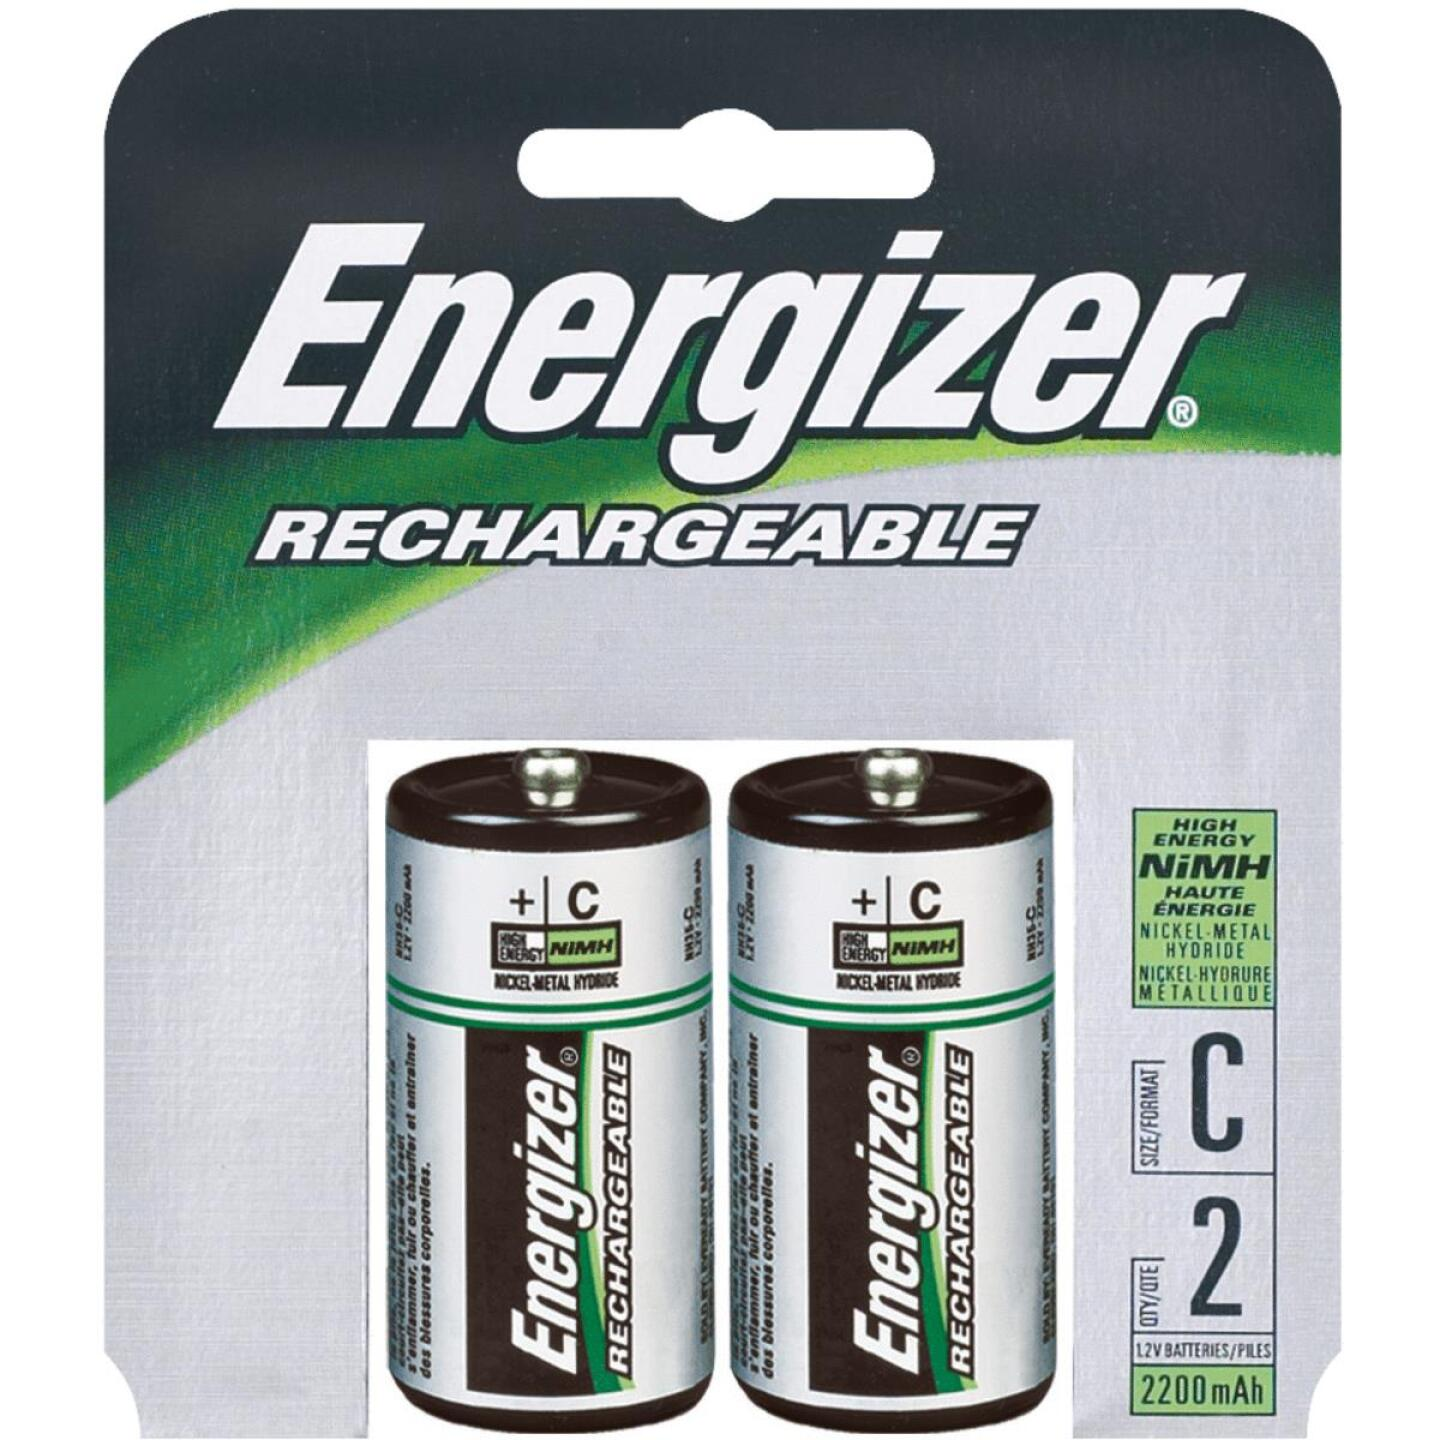 Energizer Recharge C NiMH Rechargeable Battery (2-Pack) Image 1